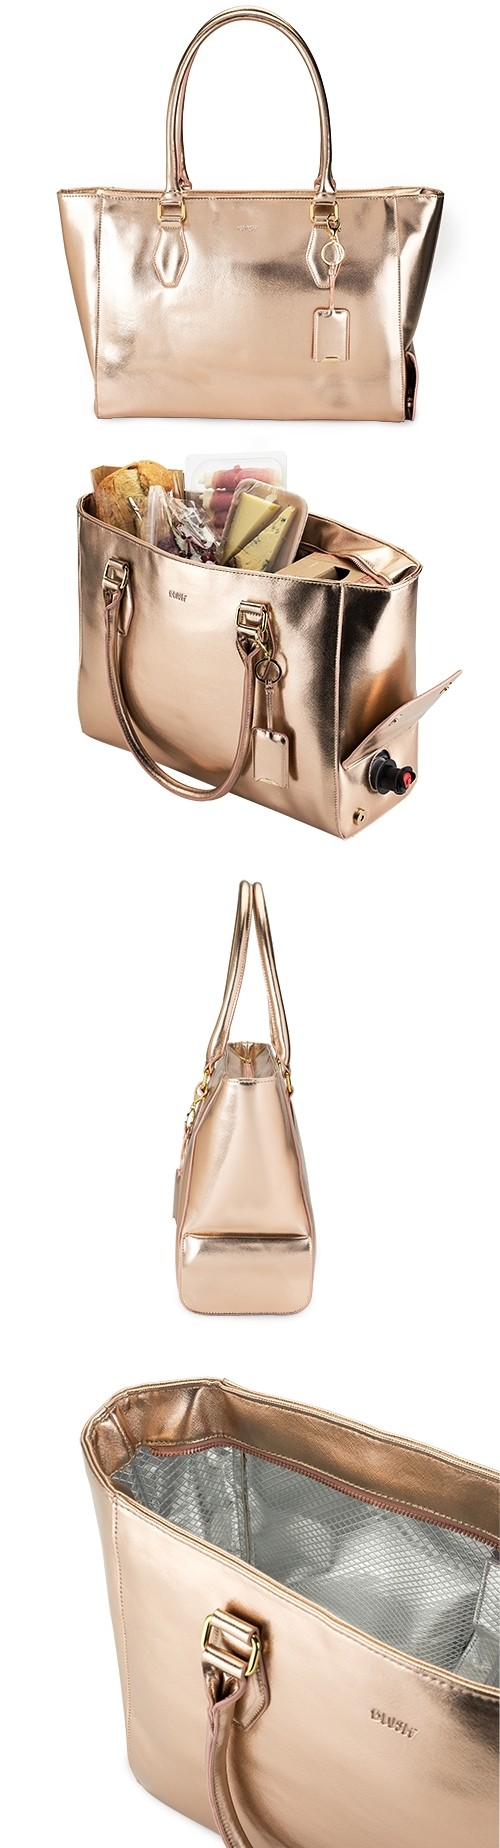 Insulated Metallic Rose Gold Wine Purse Tote by Blush